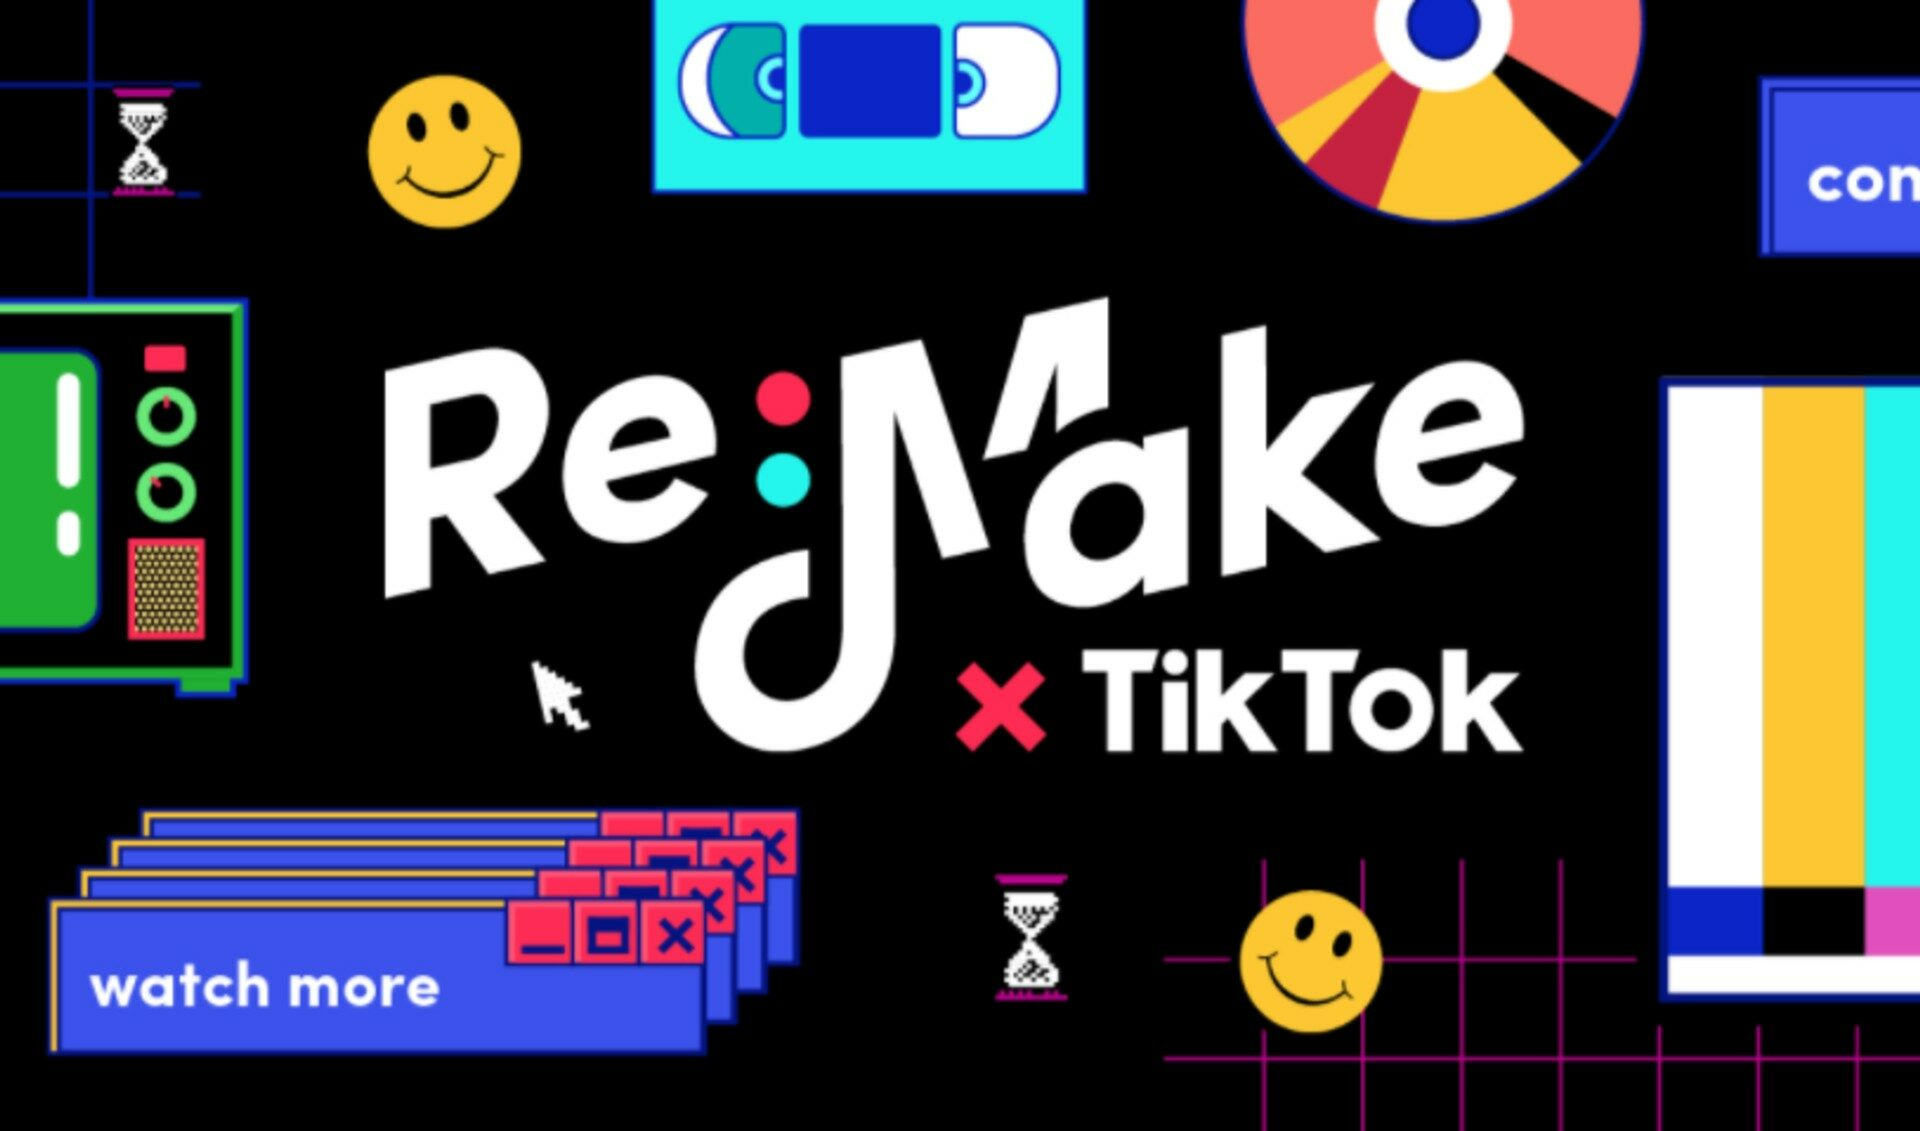 TikTok Fetes One-Year Anniversary Of Ad Platform By Asking Creators To 'Re:Make' Iconic Commercials